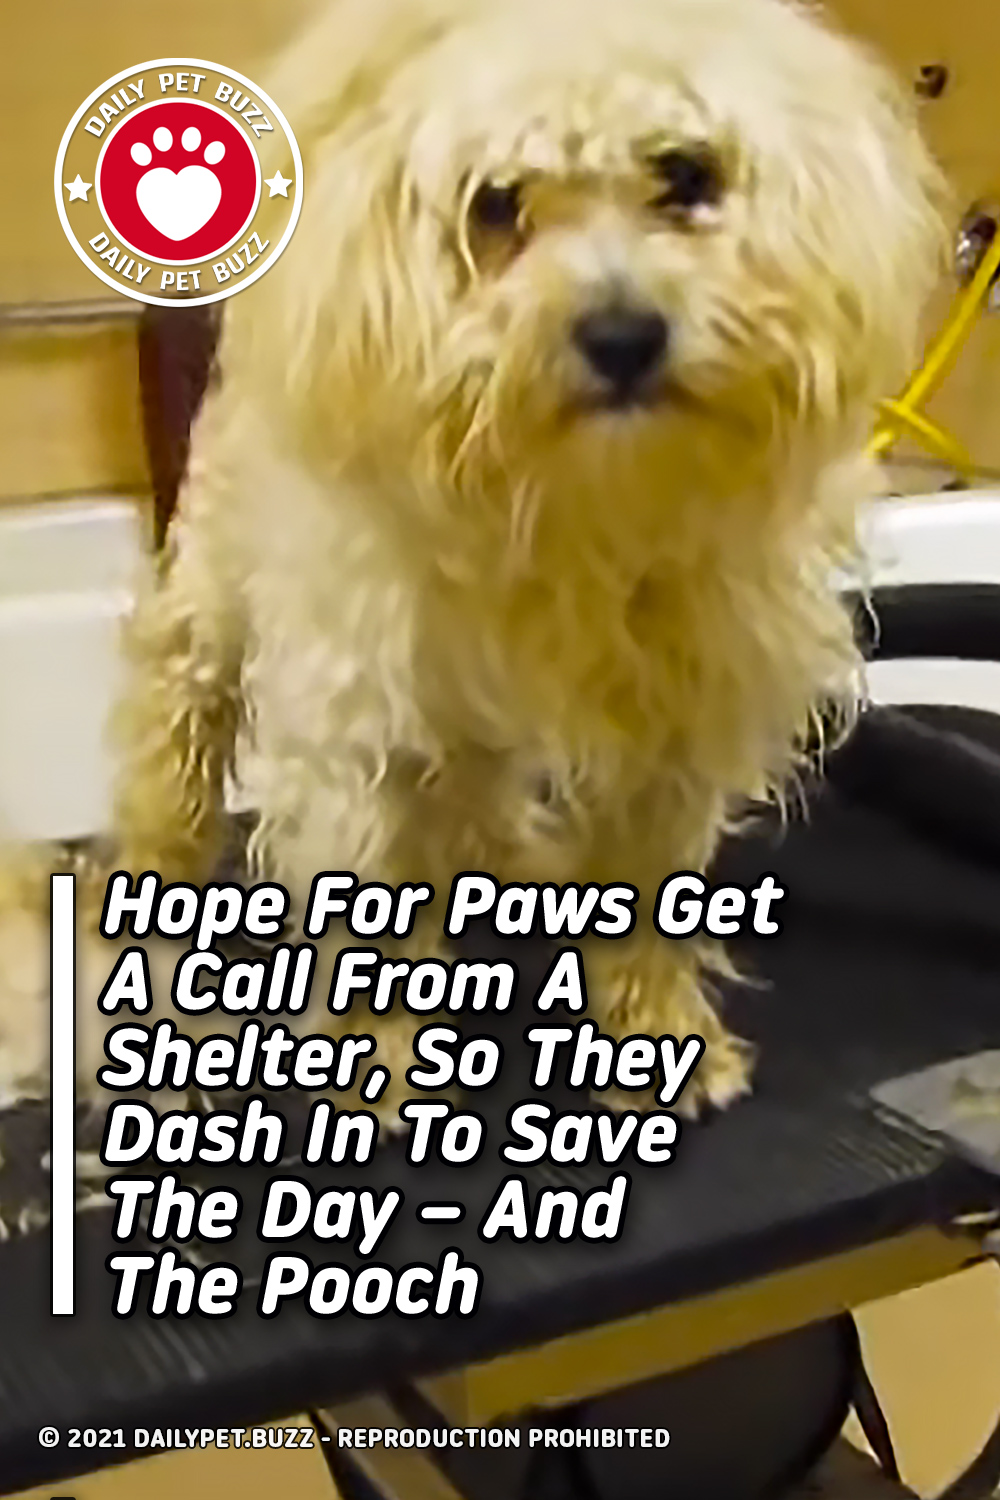 Hope For Paws Get A Call From A Shelter, So They Dash In To Save The Day – And The Pooch